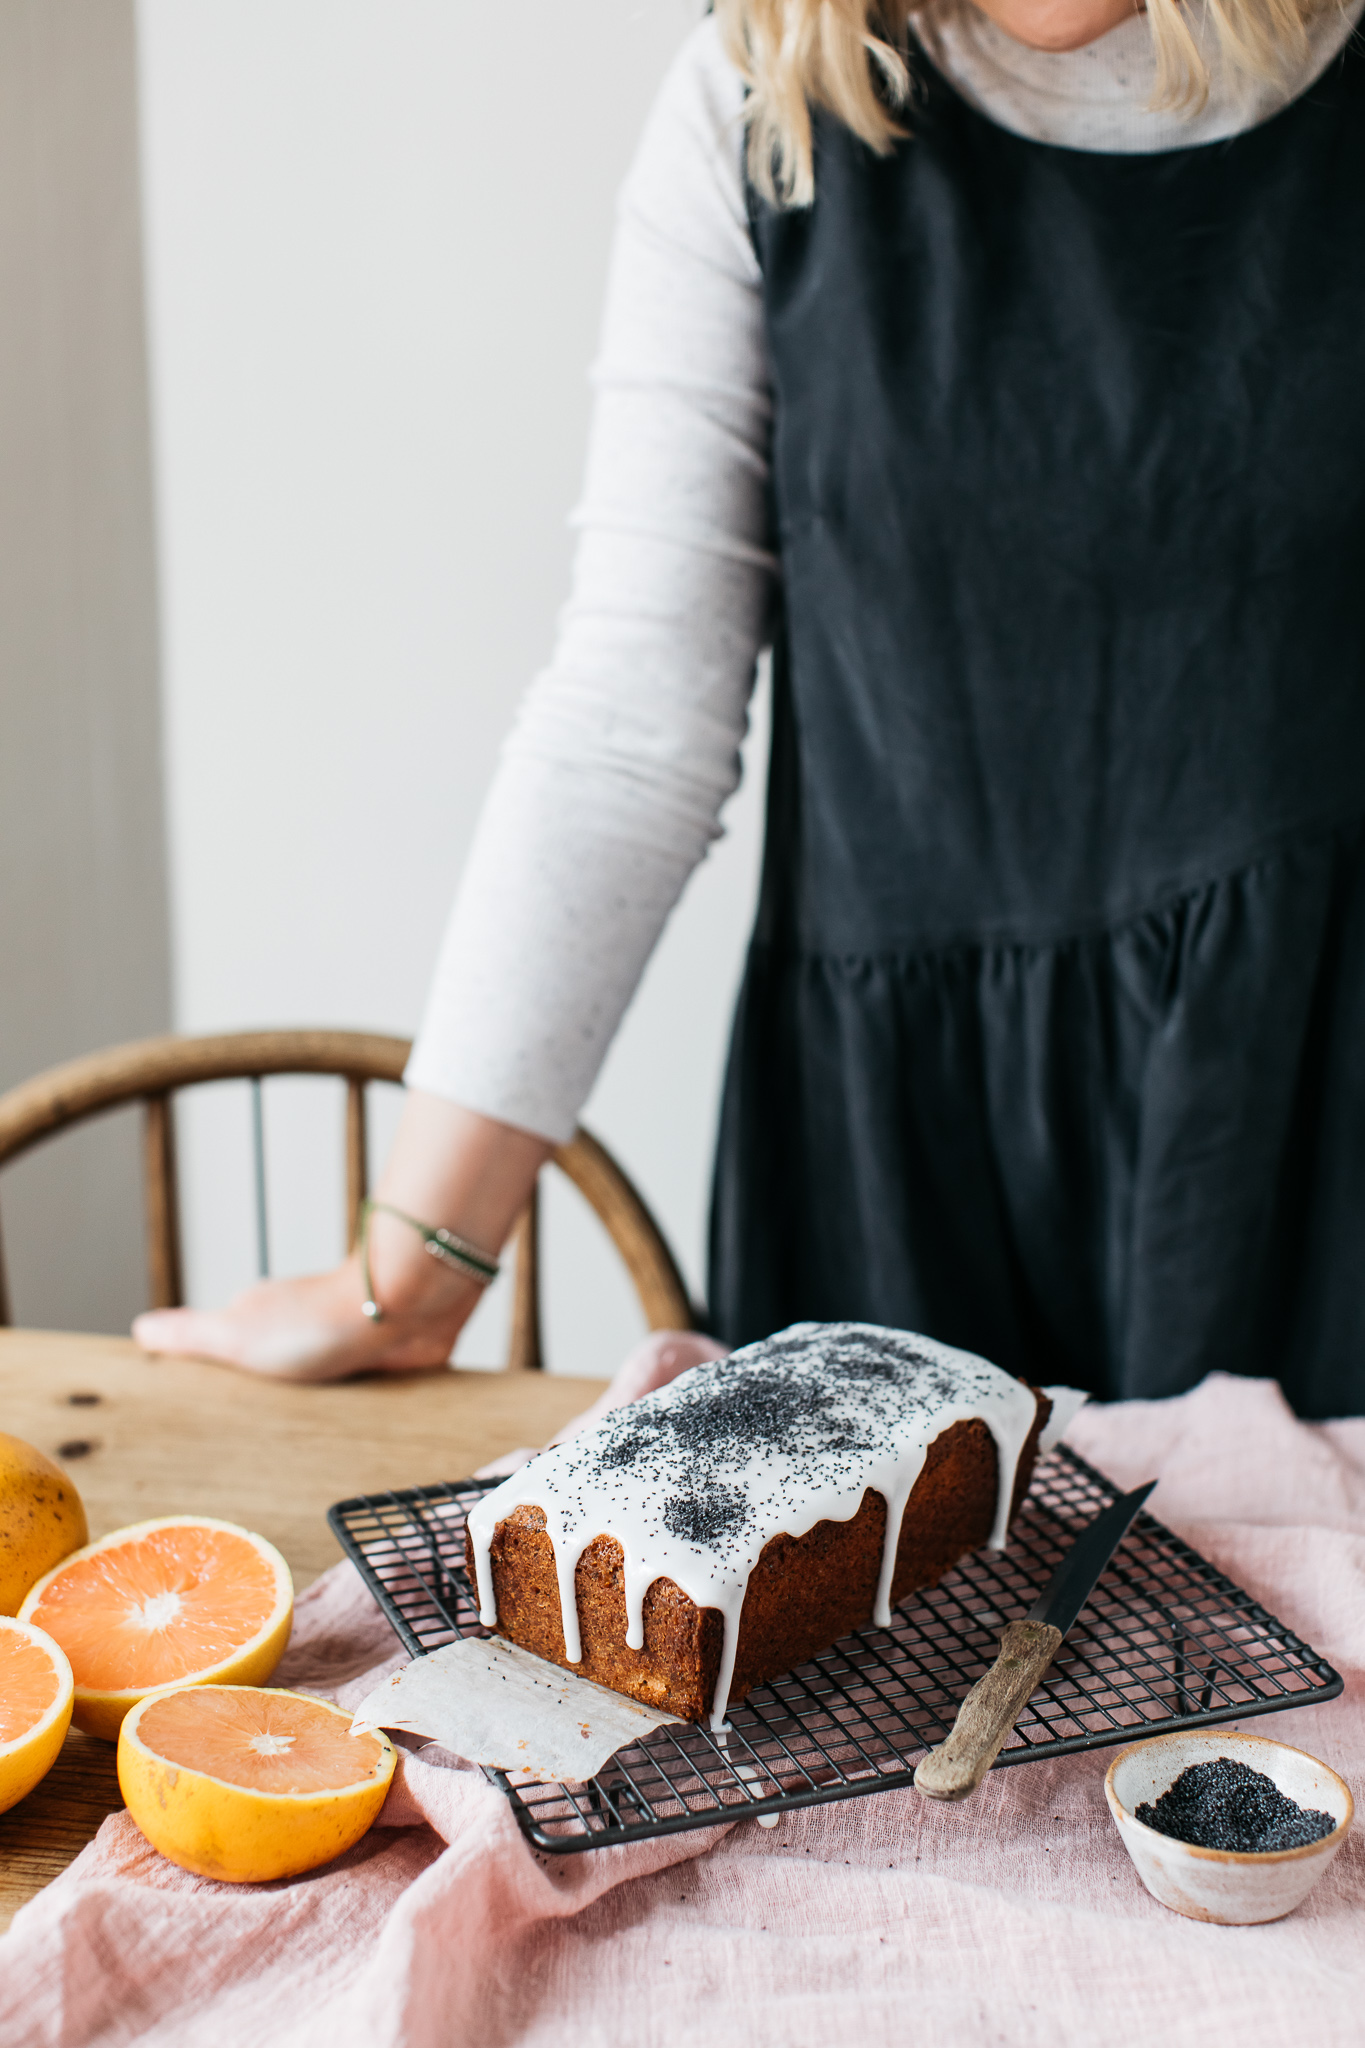 FODMAP friendly gluten free grapefruit and poppy seed loaf cake